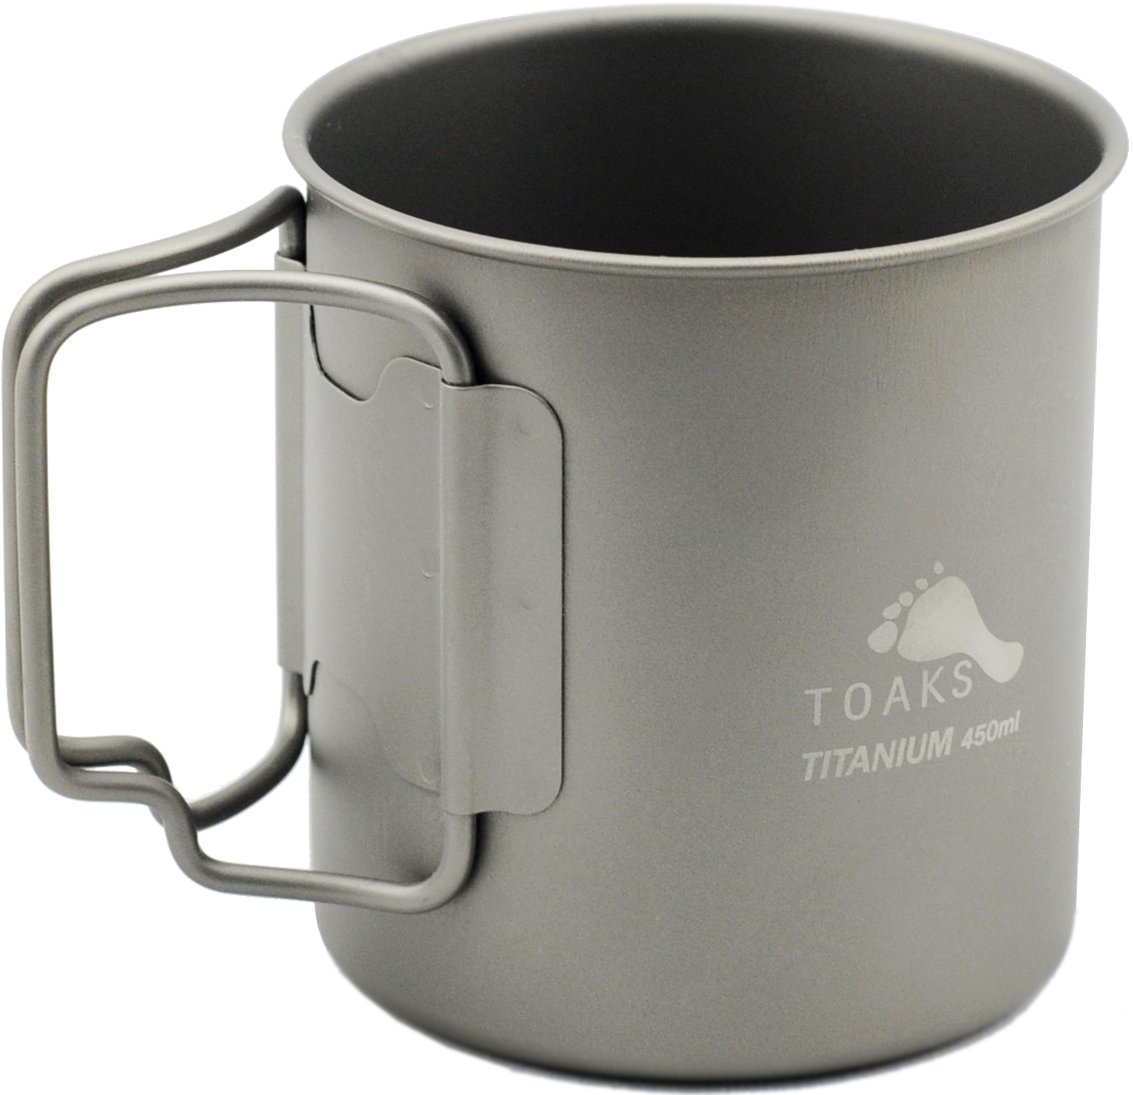 TOAKS Titanium 450ml Cup by TOAKS CUP-450